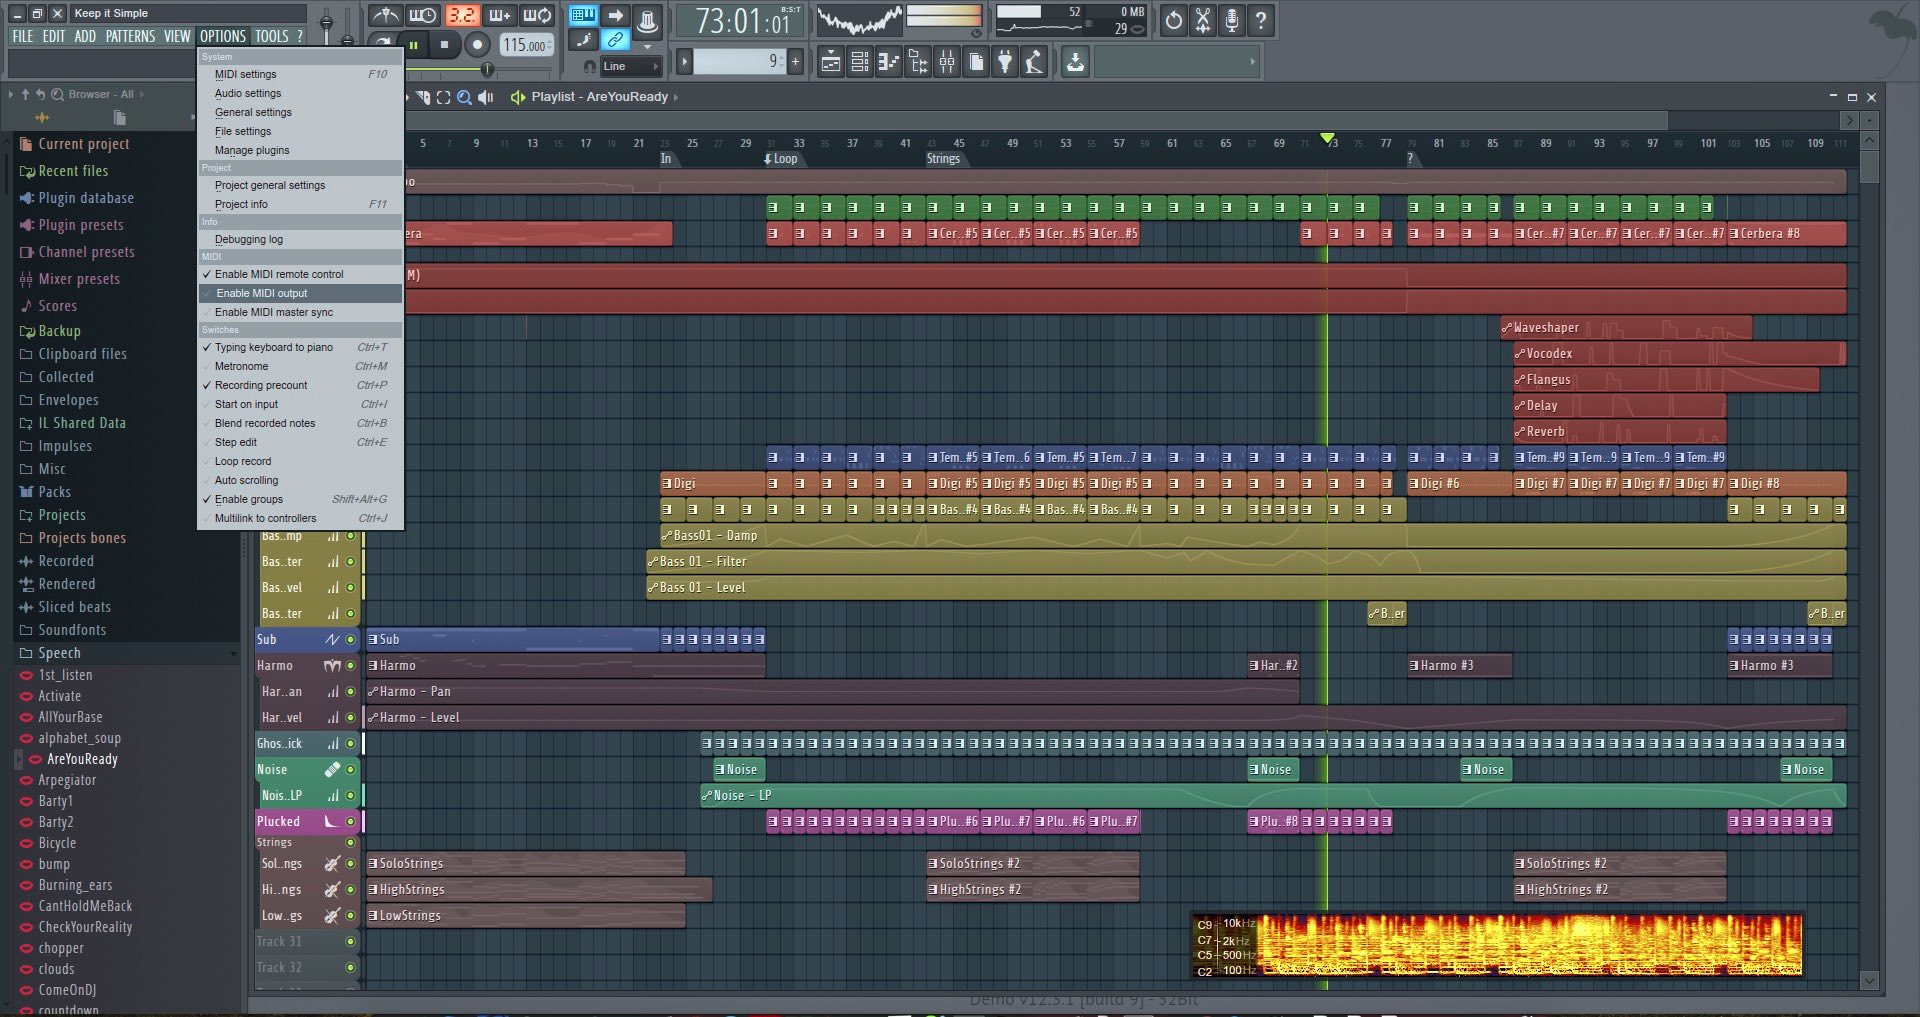 fl studio 12.4 free full download